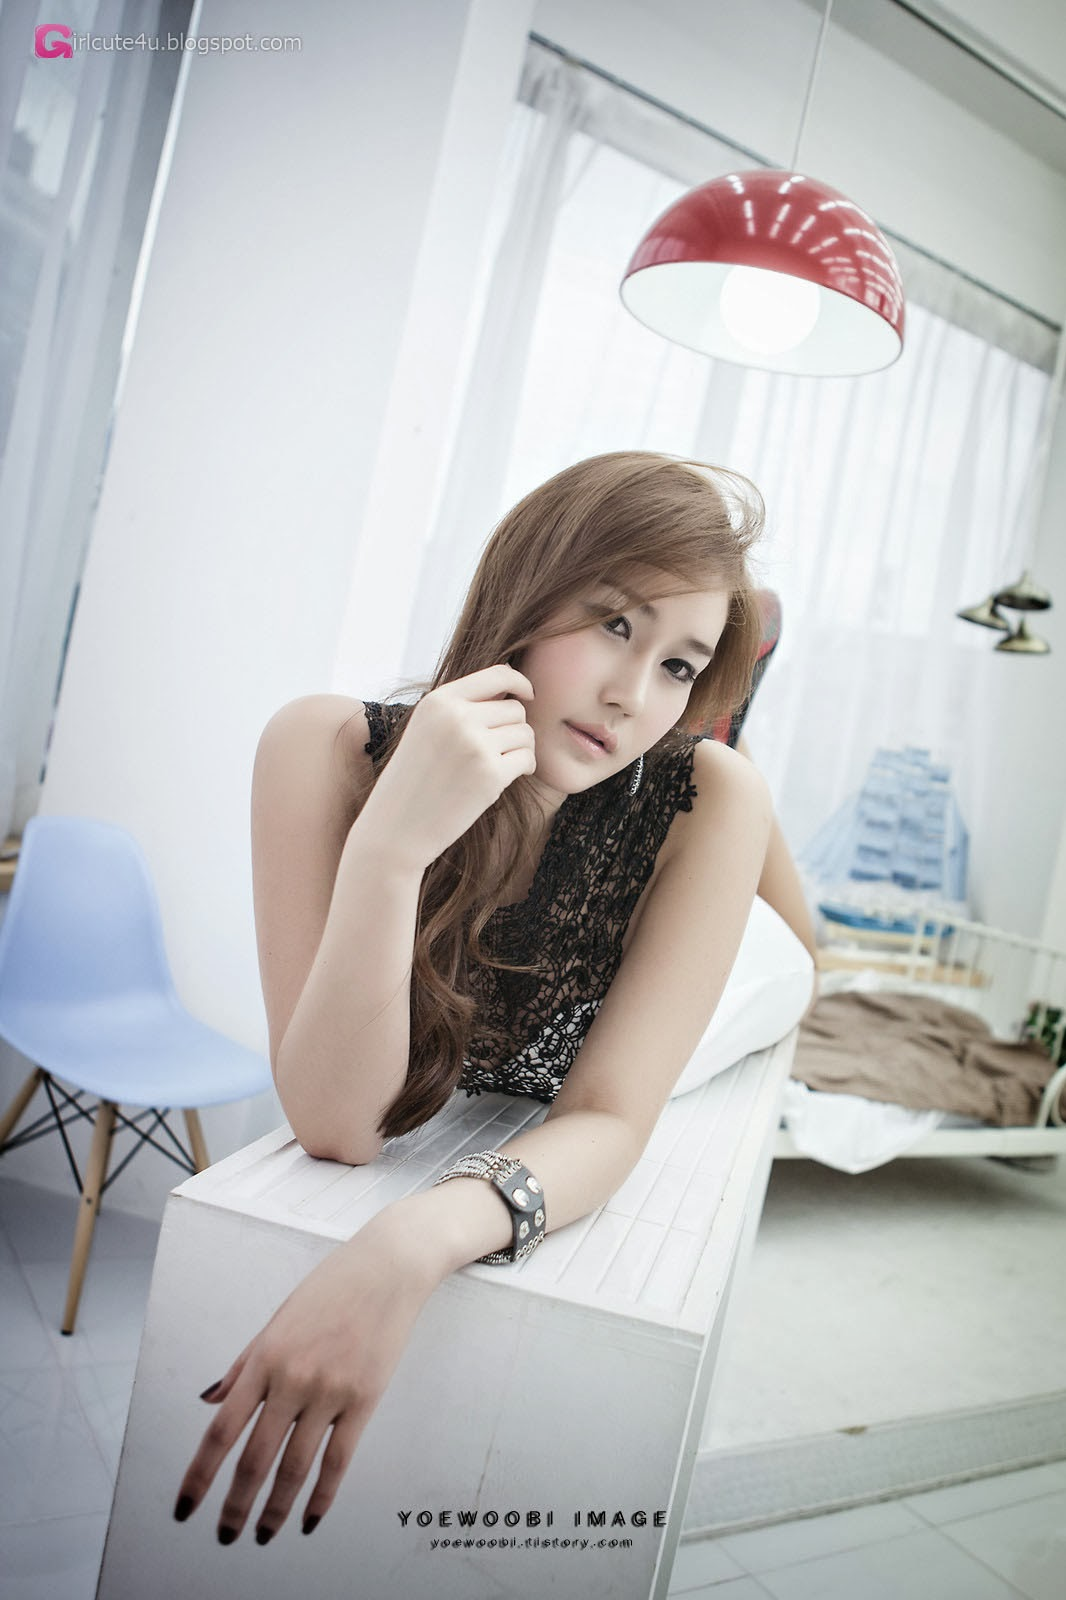 3 Lee Hyo Young - very cute asian girl-girlcute4u.blogspot.com